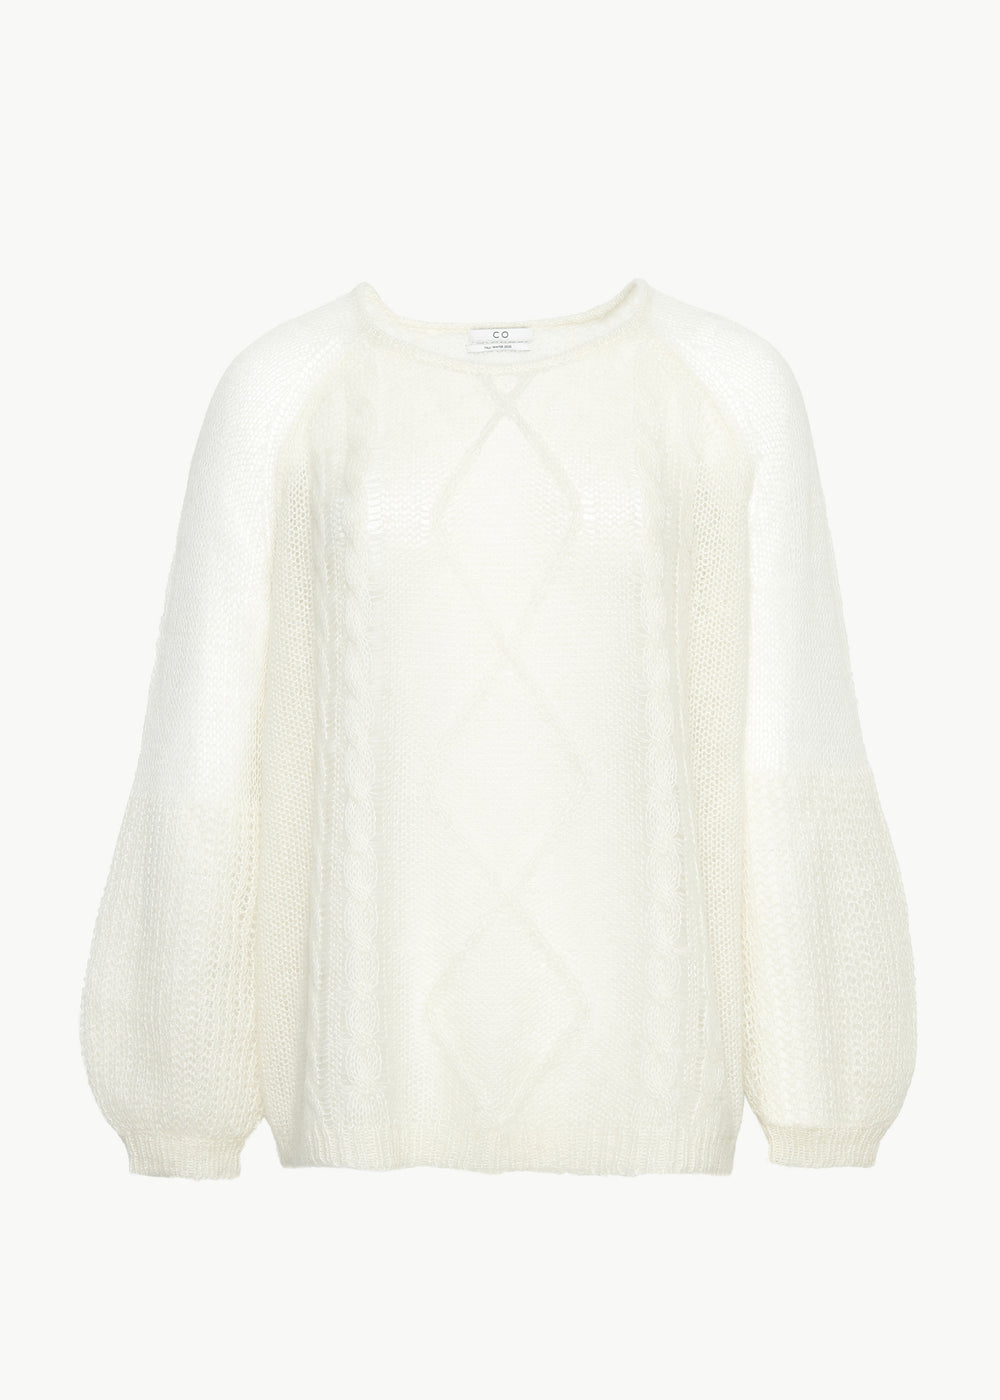 Cable Knit Sweater in Open Weave - Ivory - CO